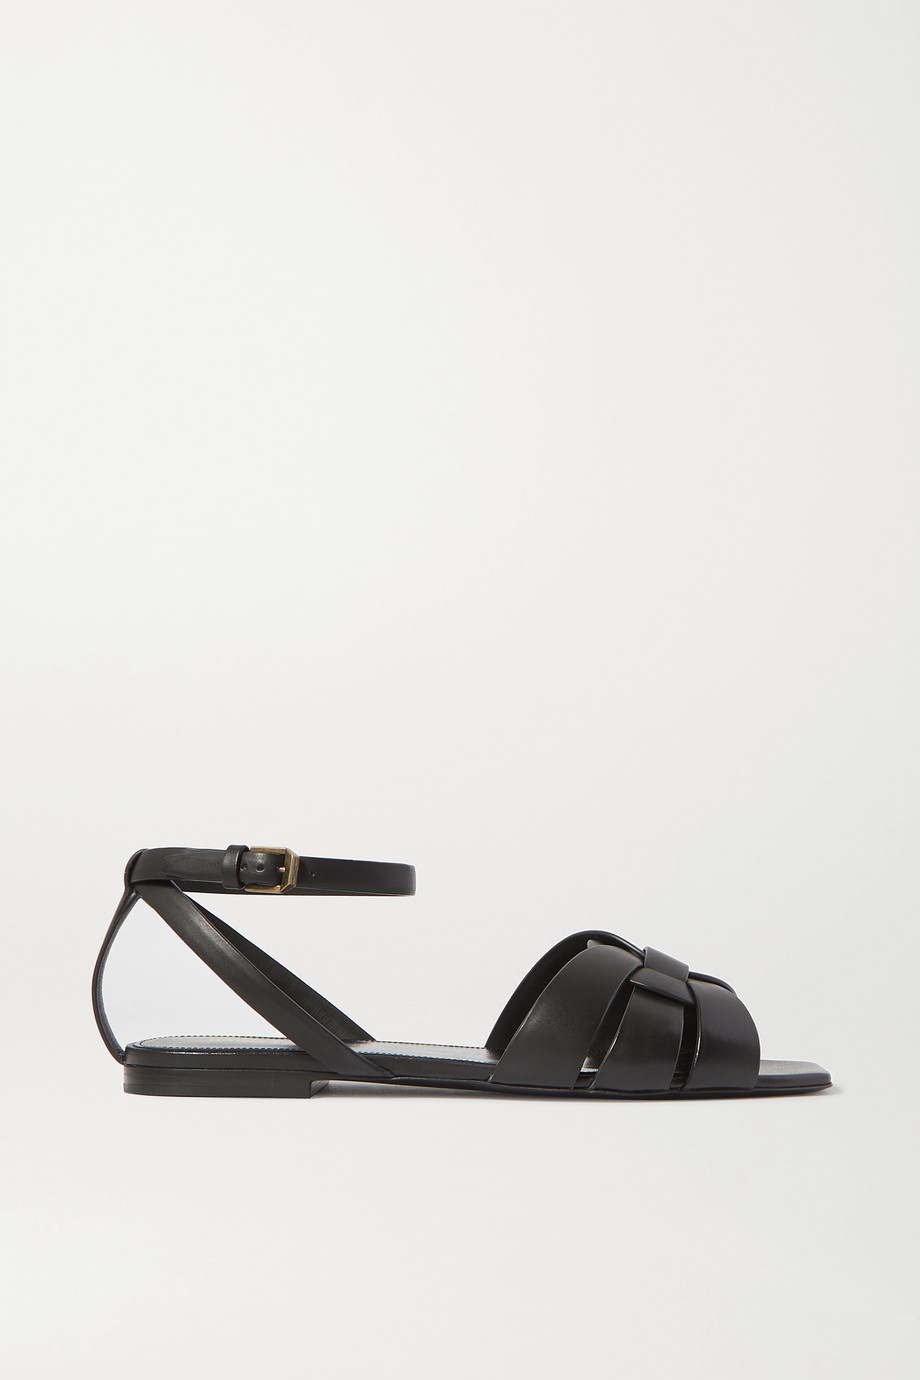 SAINT LAURENT Nu Pieds woven leather sandals